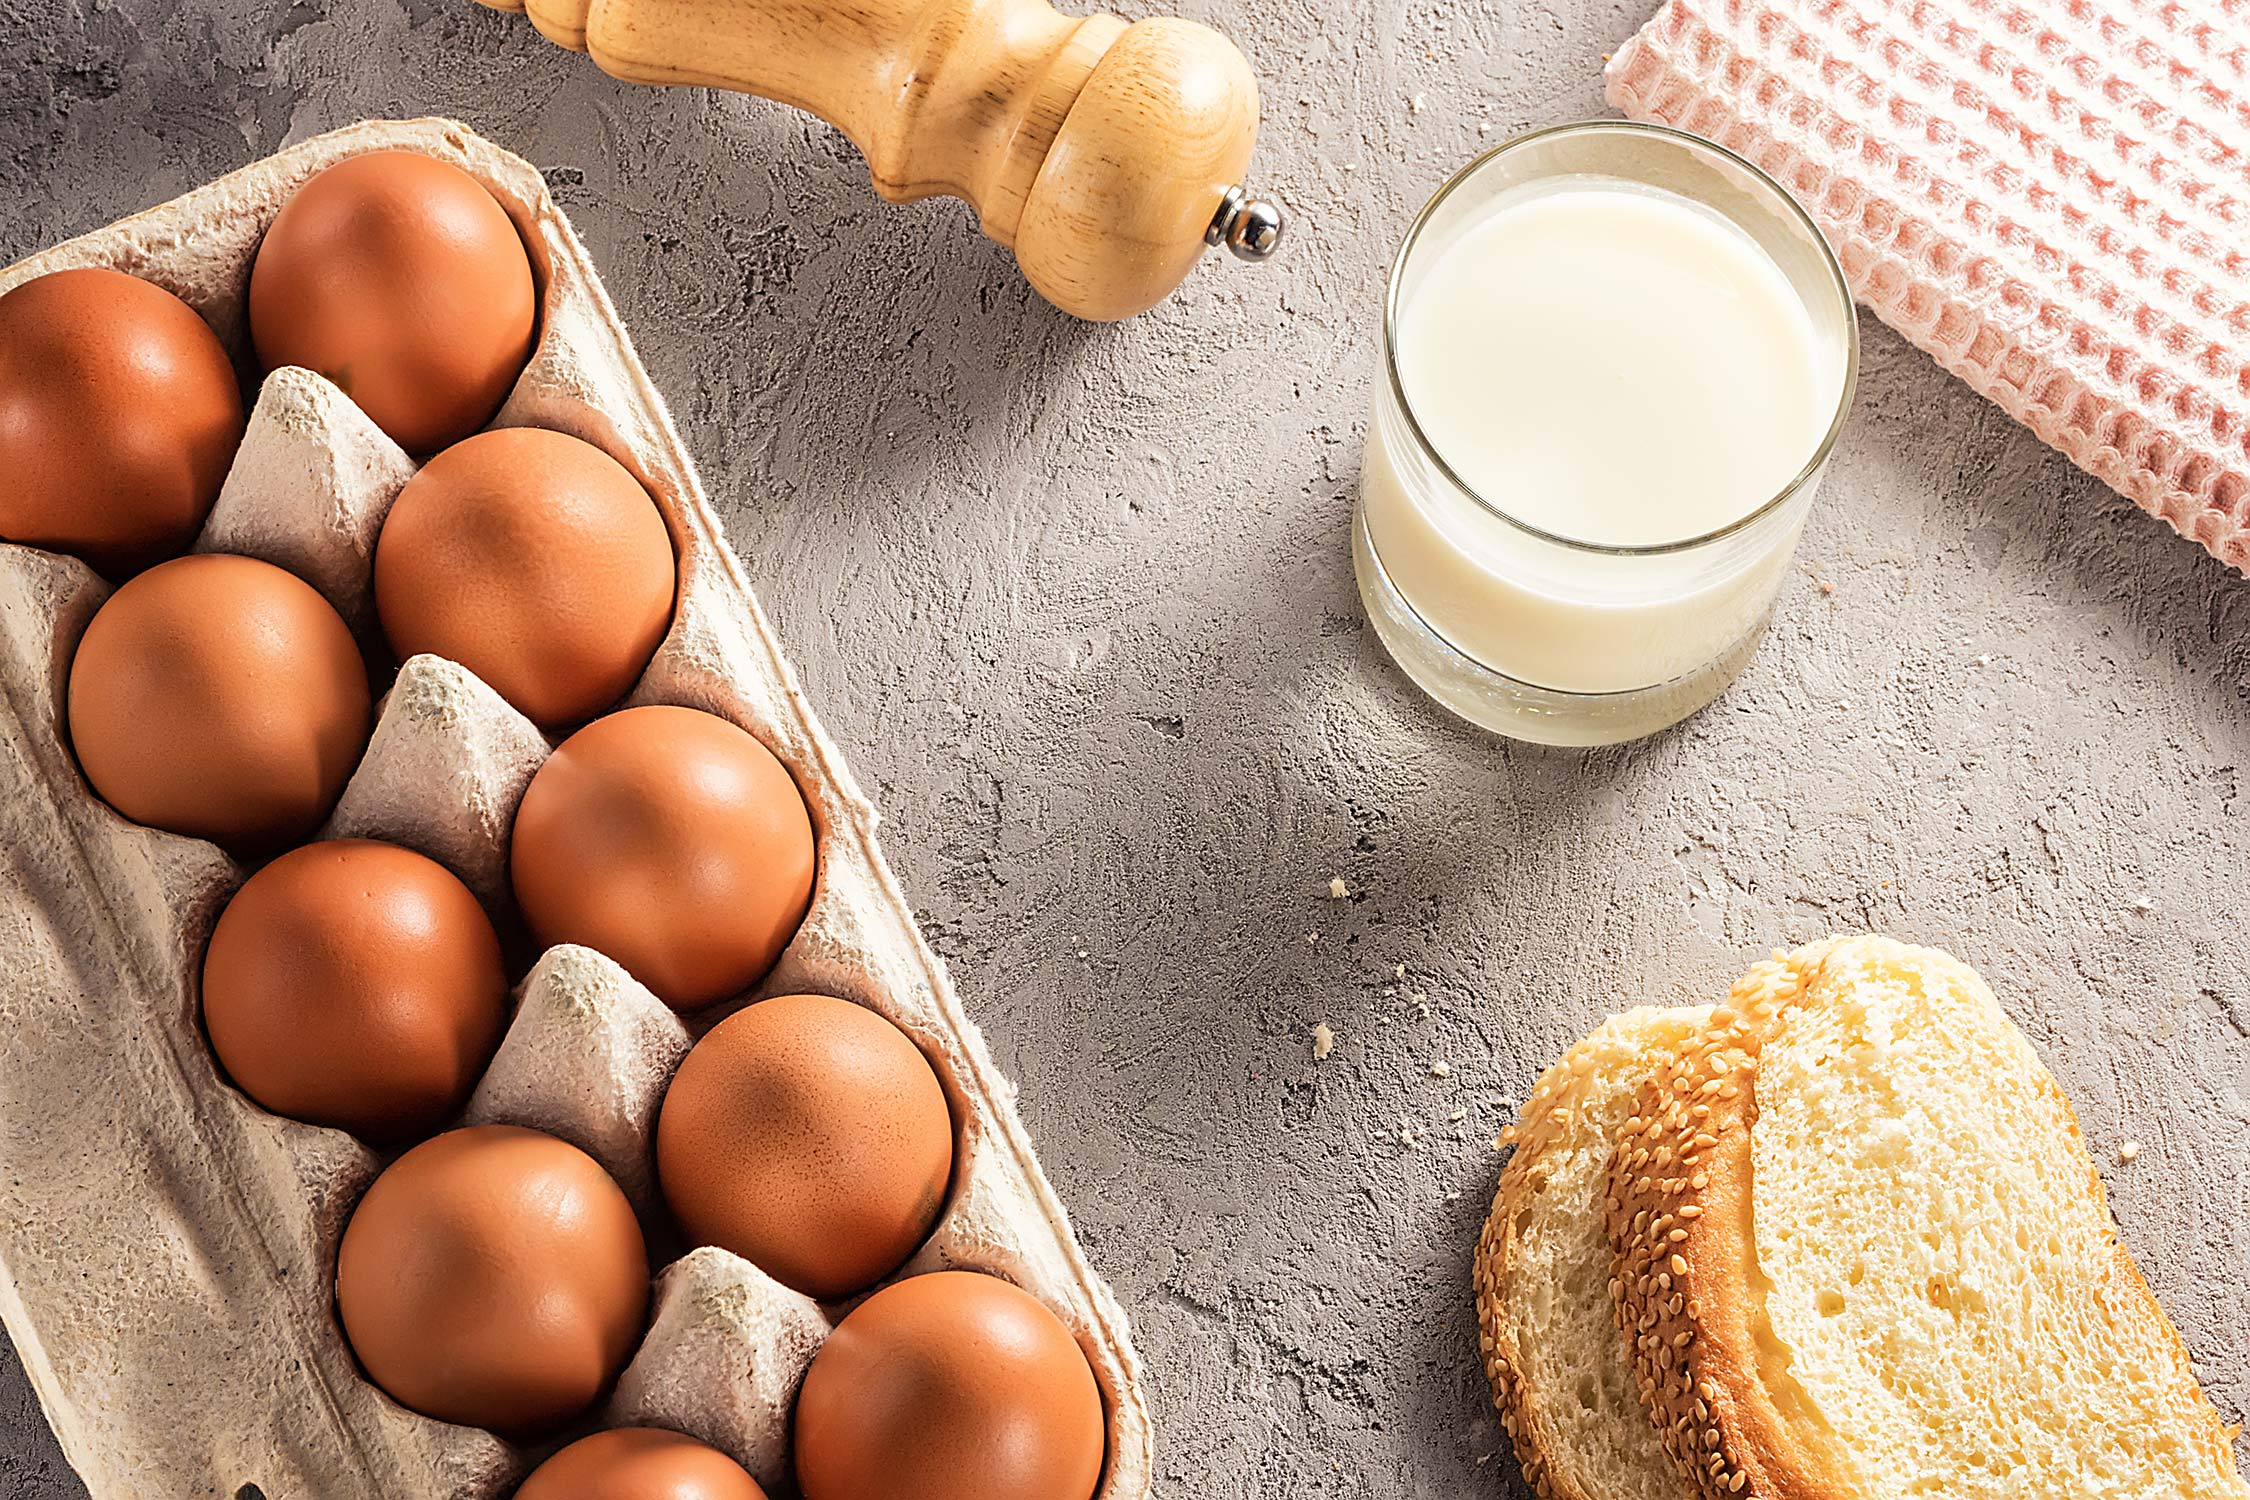 Eggs, bread, and milk